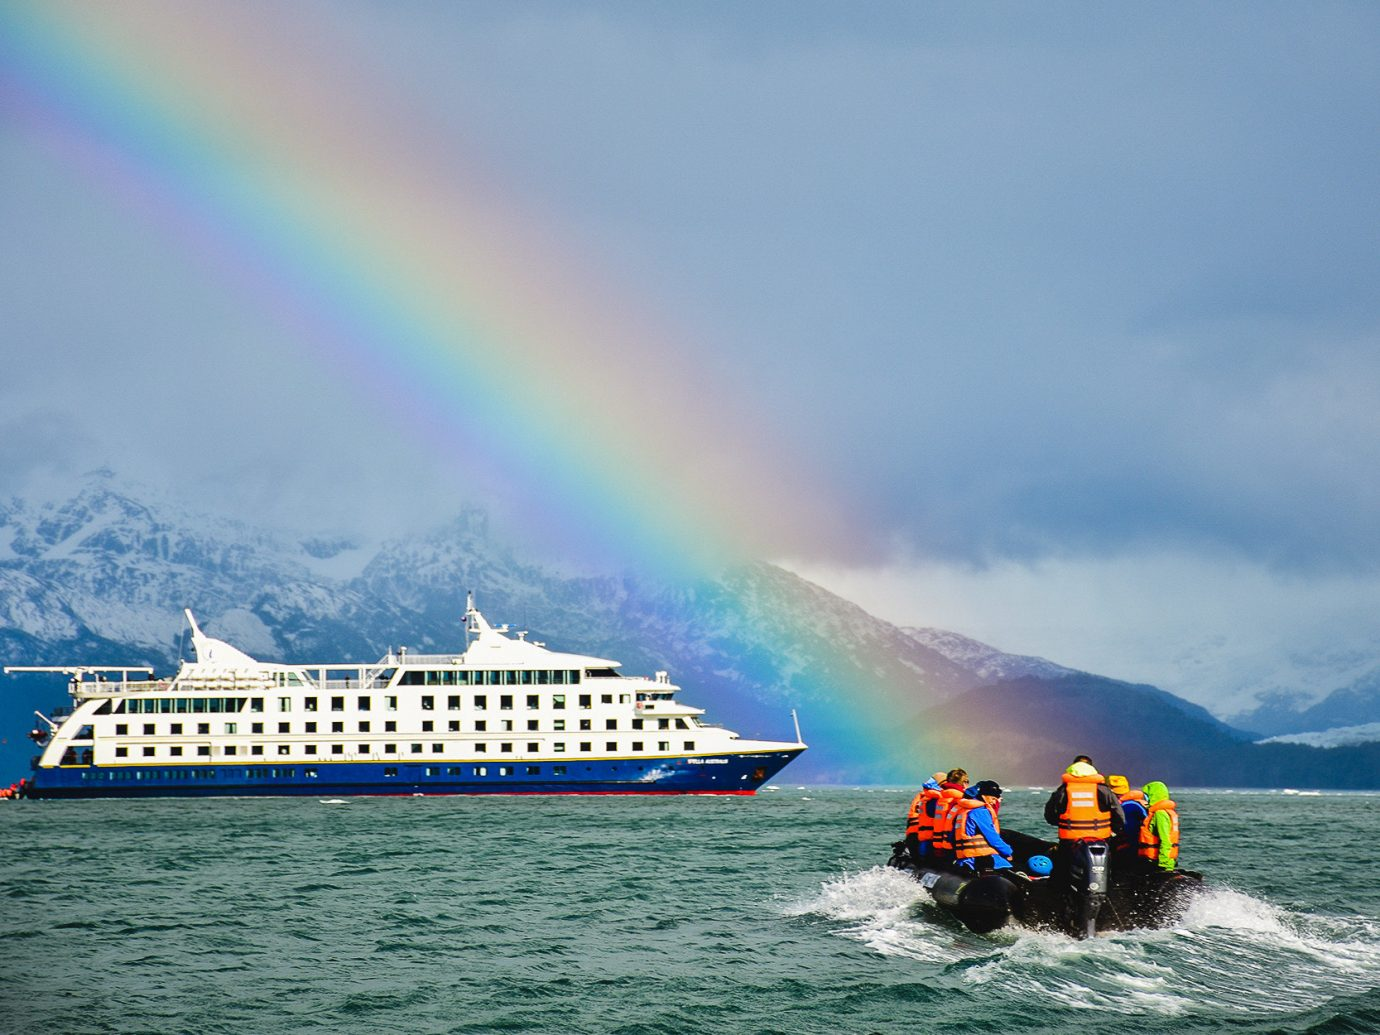 Cruise Travel Luxury Travel Trip Ideas water sky outdoor Boat Nature water transportation rainbow Sea wave cloud boating watercraft meteorological phenomenon yellow Ocean landscape wind wave open